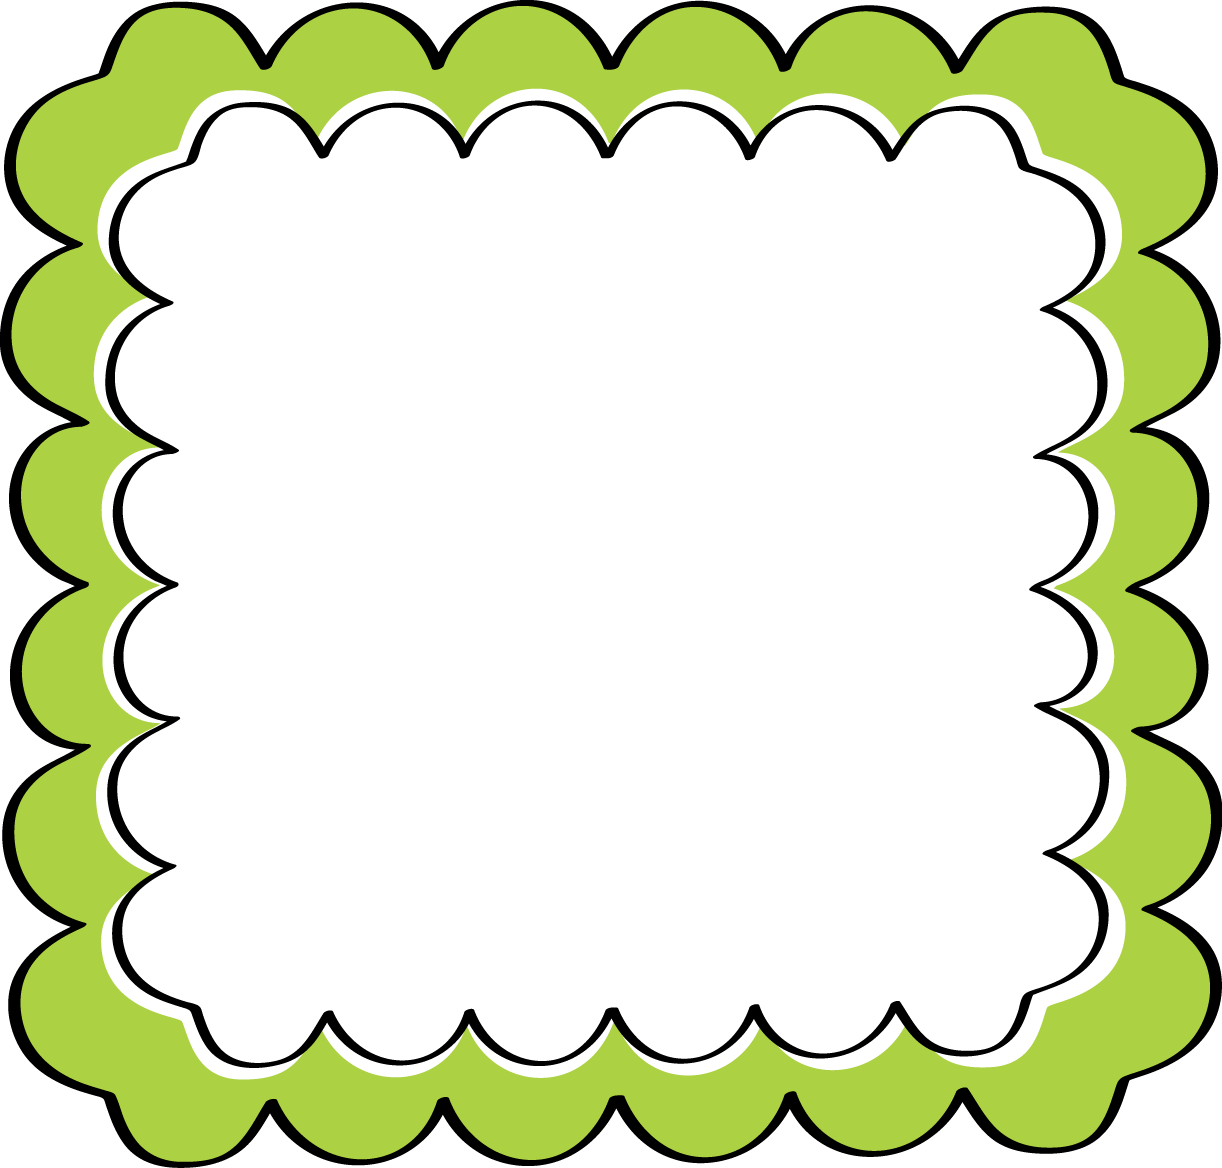 Jazz clipart border. School theme green scalloped